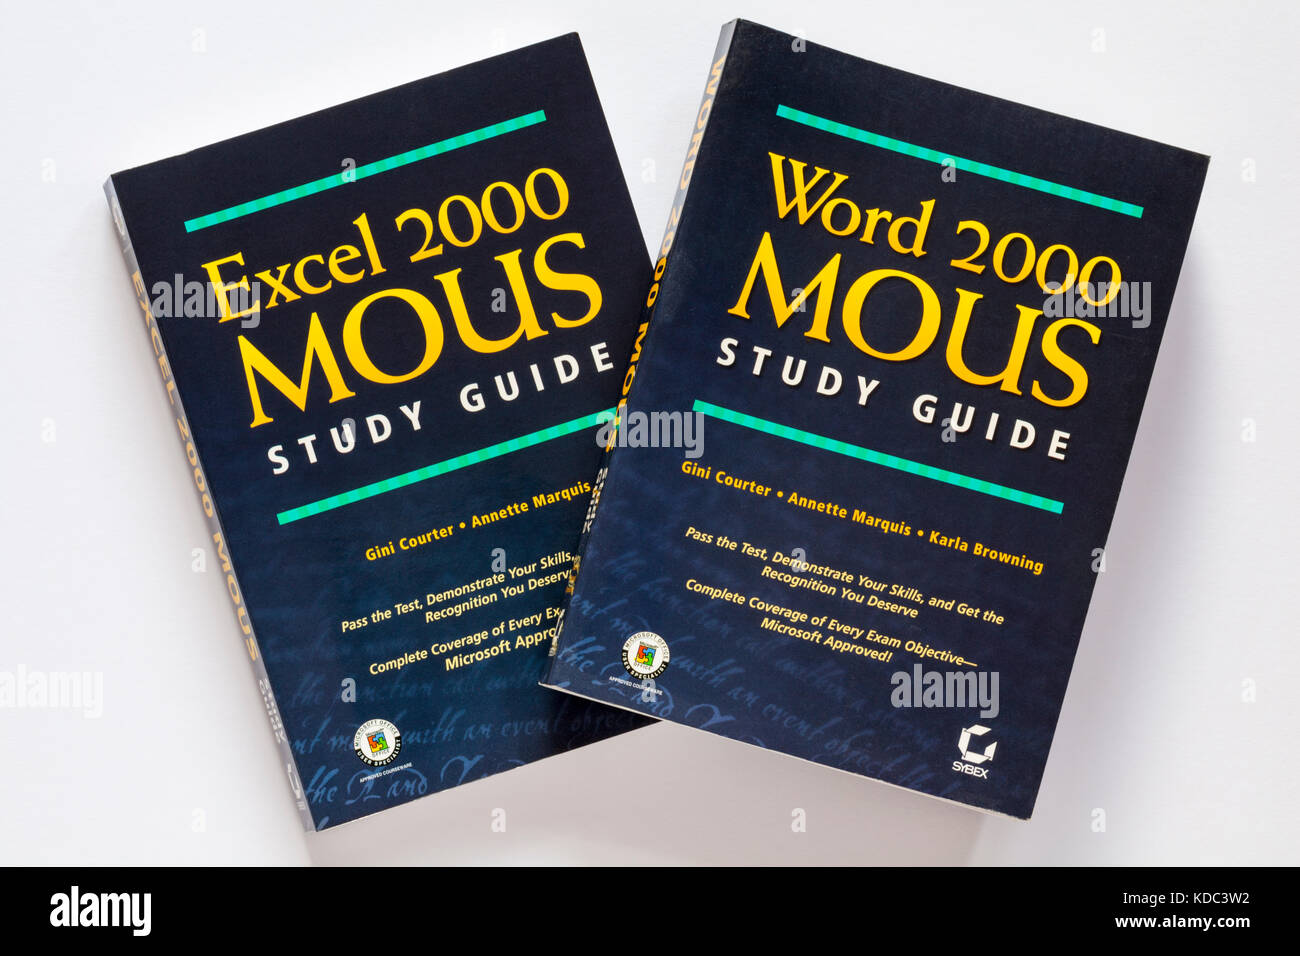 Word 2000 Mous Study Guide and Excel 2000 Mous Study Guide books on white background - Stock Image